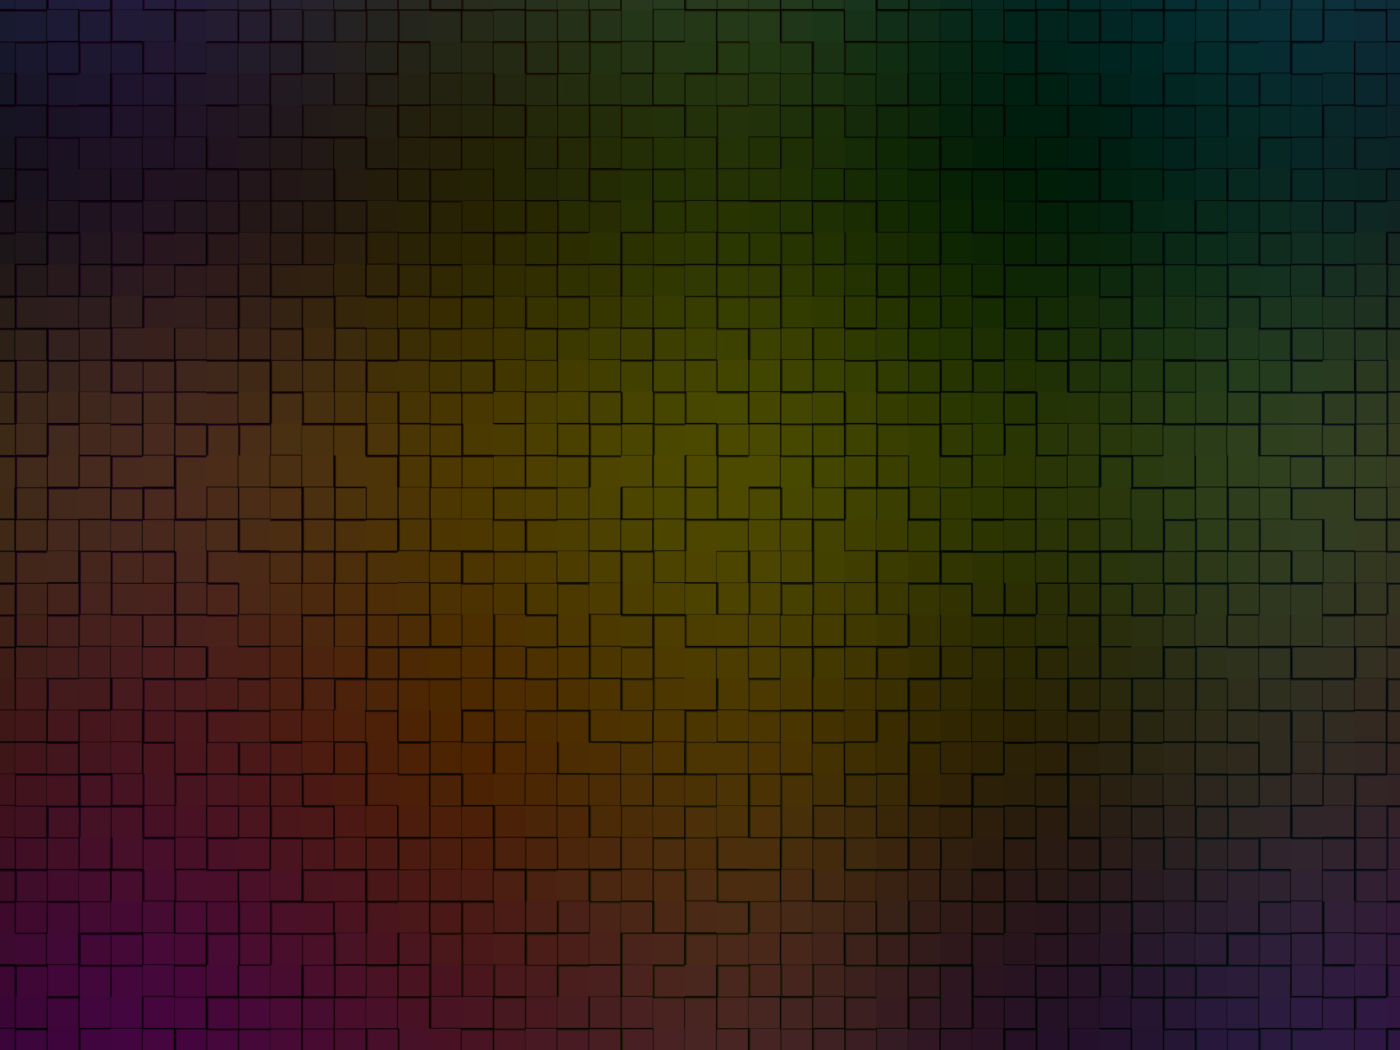 Das Rainbow Tiles Wallpaper 1400x1050